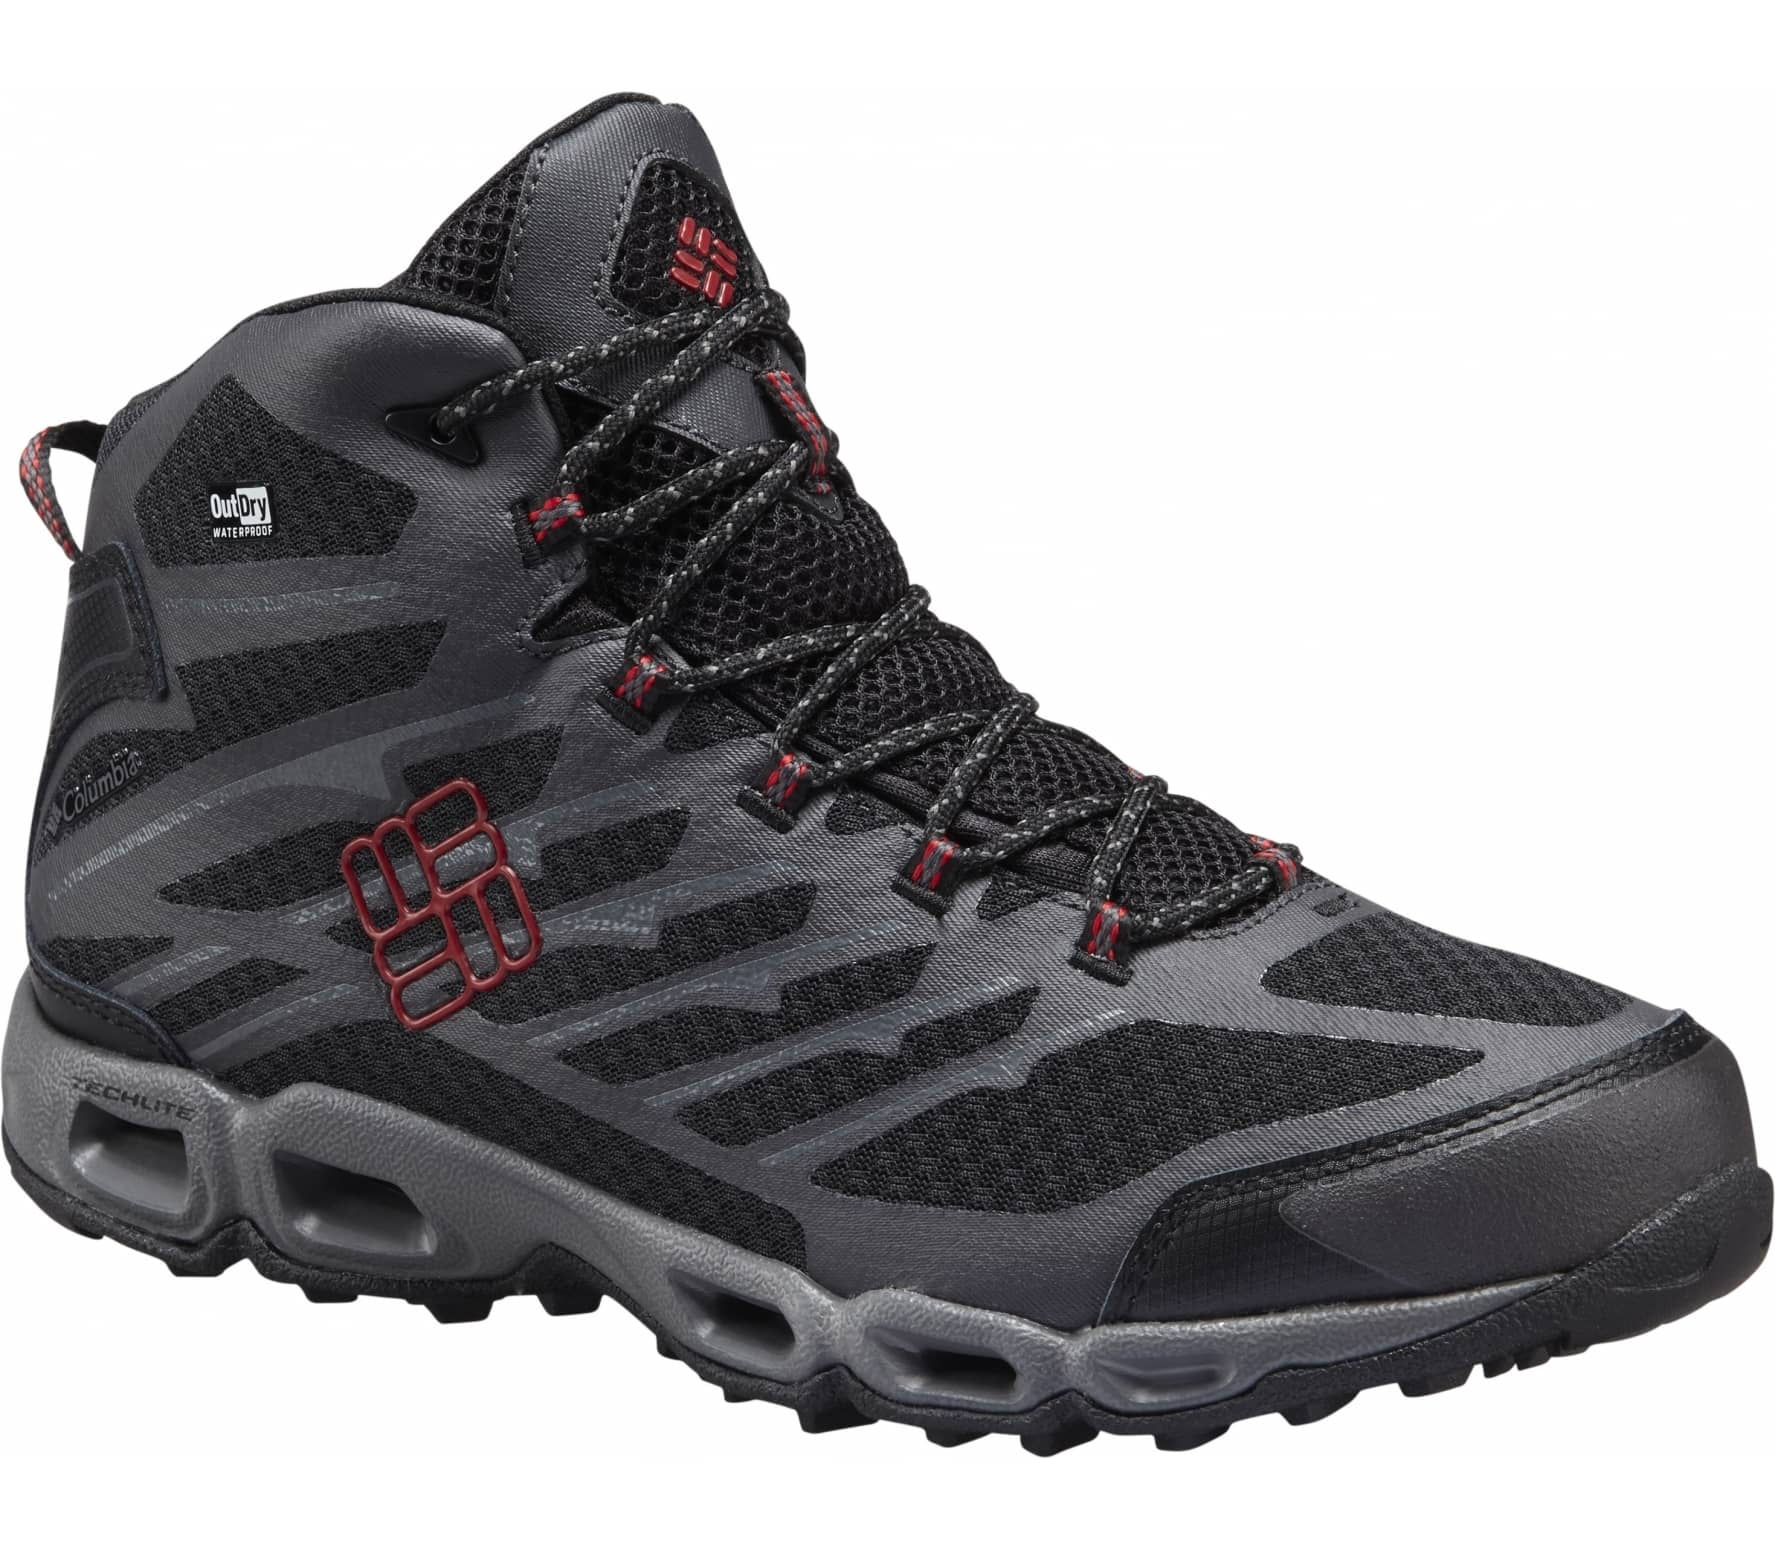 04ff25815334 Columbia - Ventrailia II Mid Outdry men s hiking shoes (black red ...